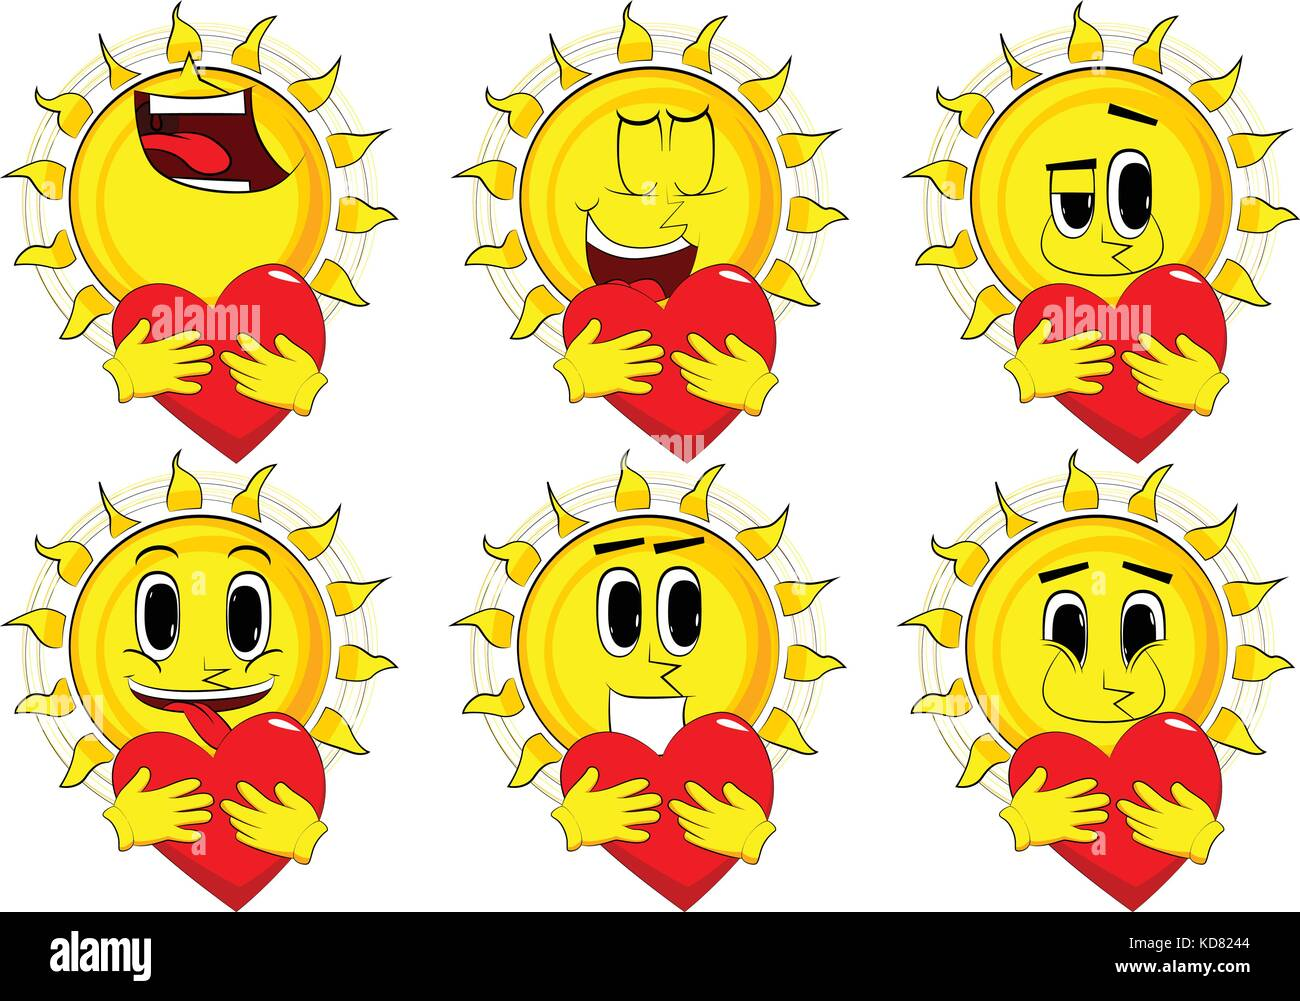 Cartoon Sun Hugging Big Red Heart Collection With Happy Faces Stock